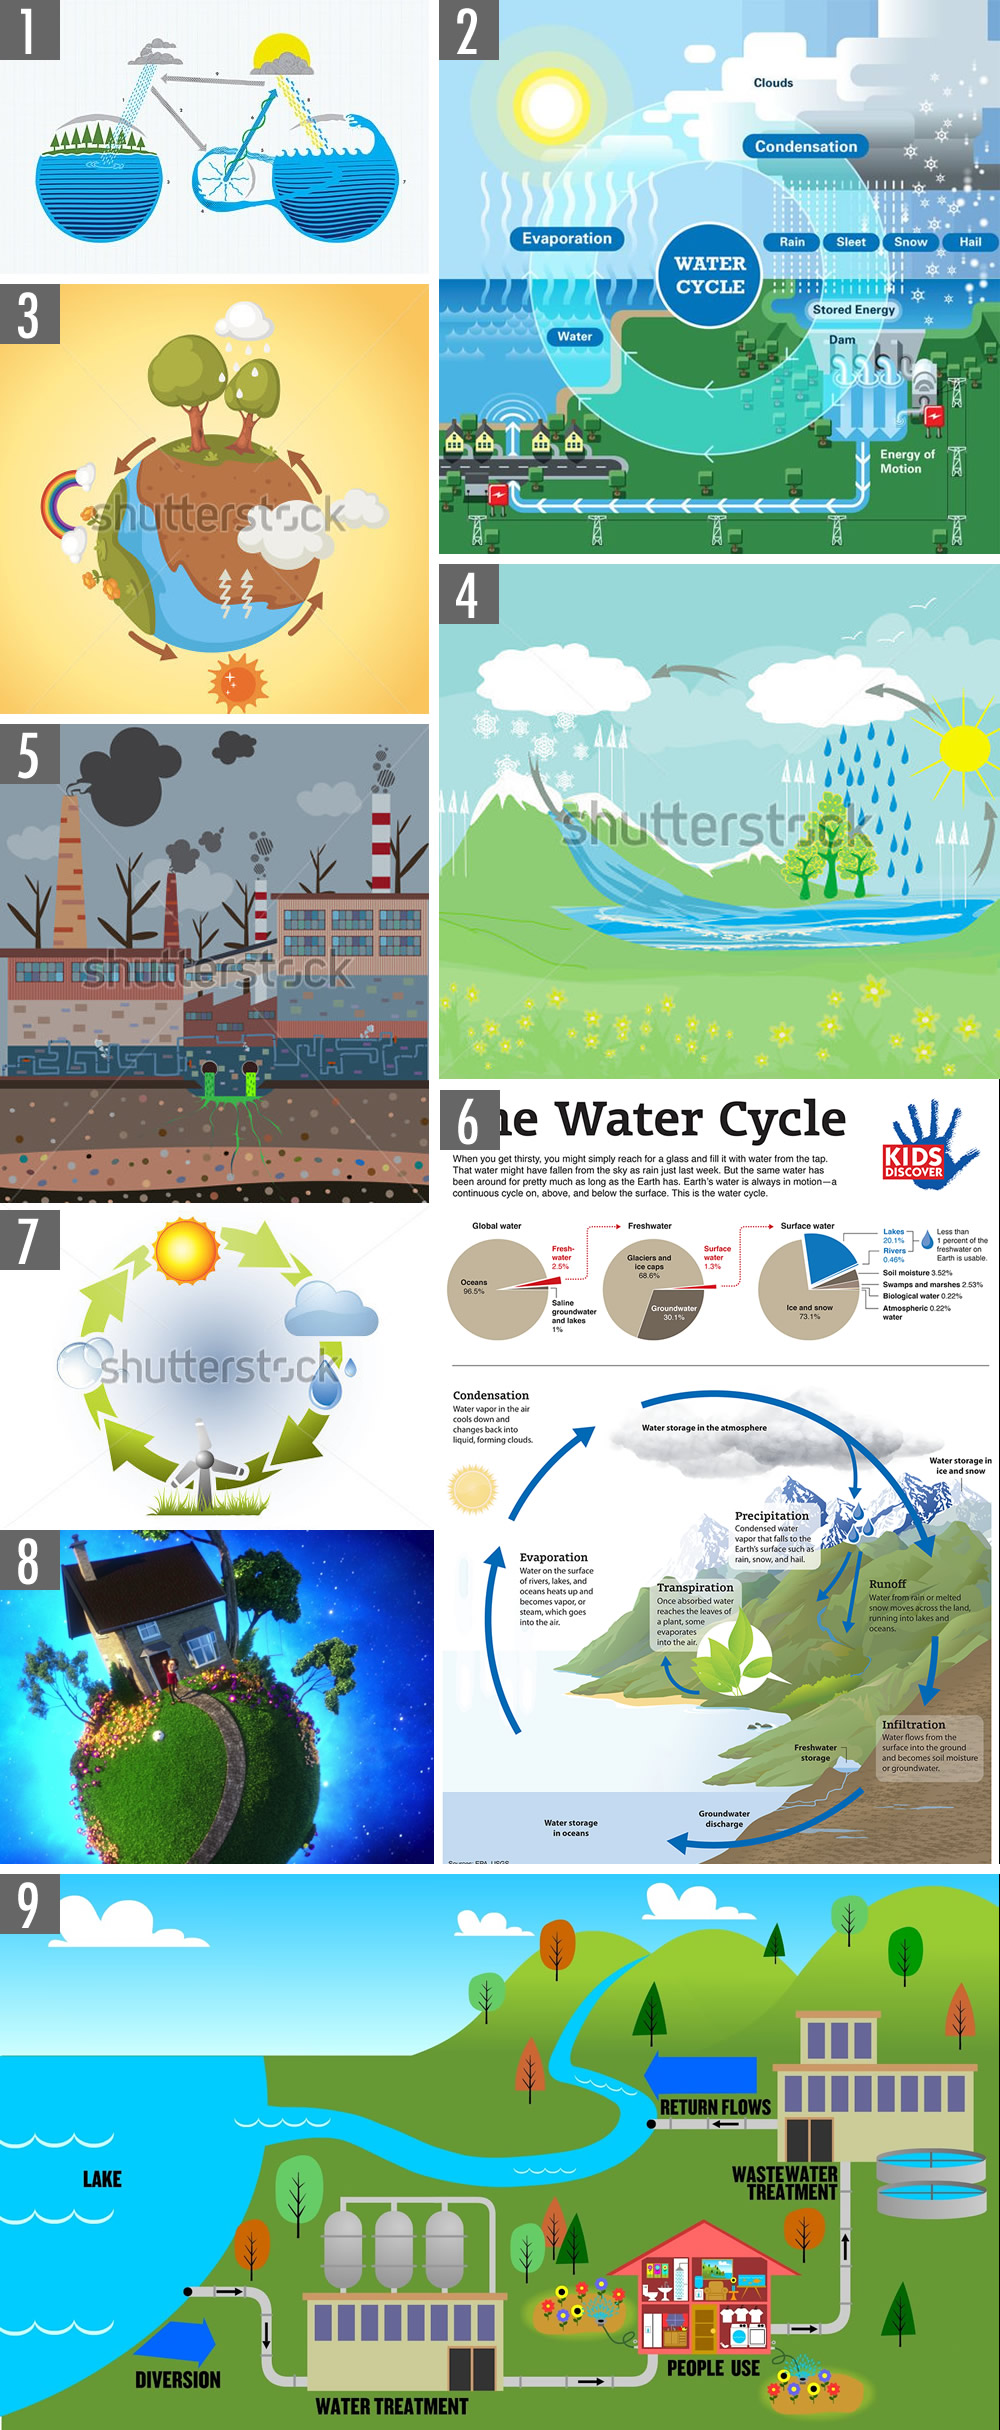 waterCycleExamples